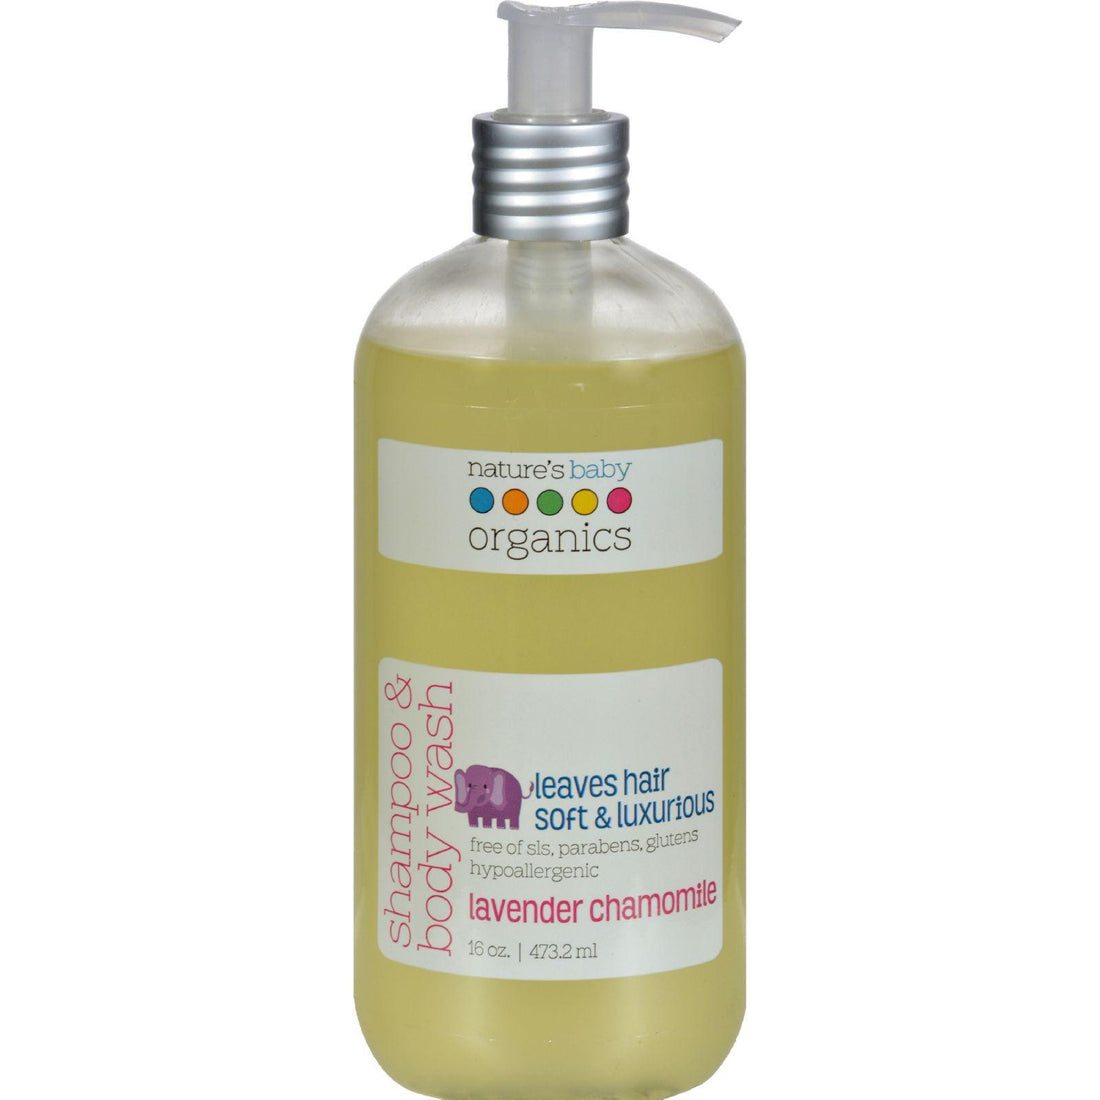 Mother Mantis: Nature's Baby Organics Shampoo And Body Wash Lavender Chamomile - 16 Fl Oz Nature's Baby Organics